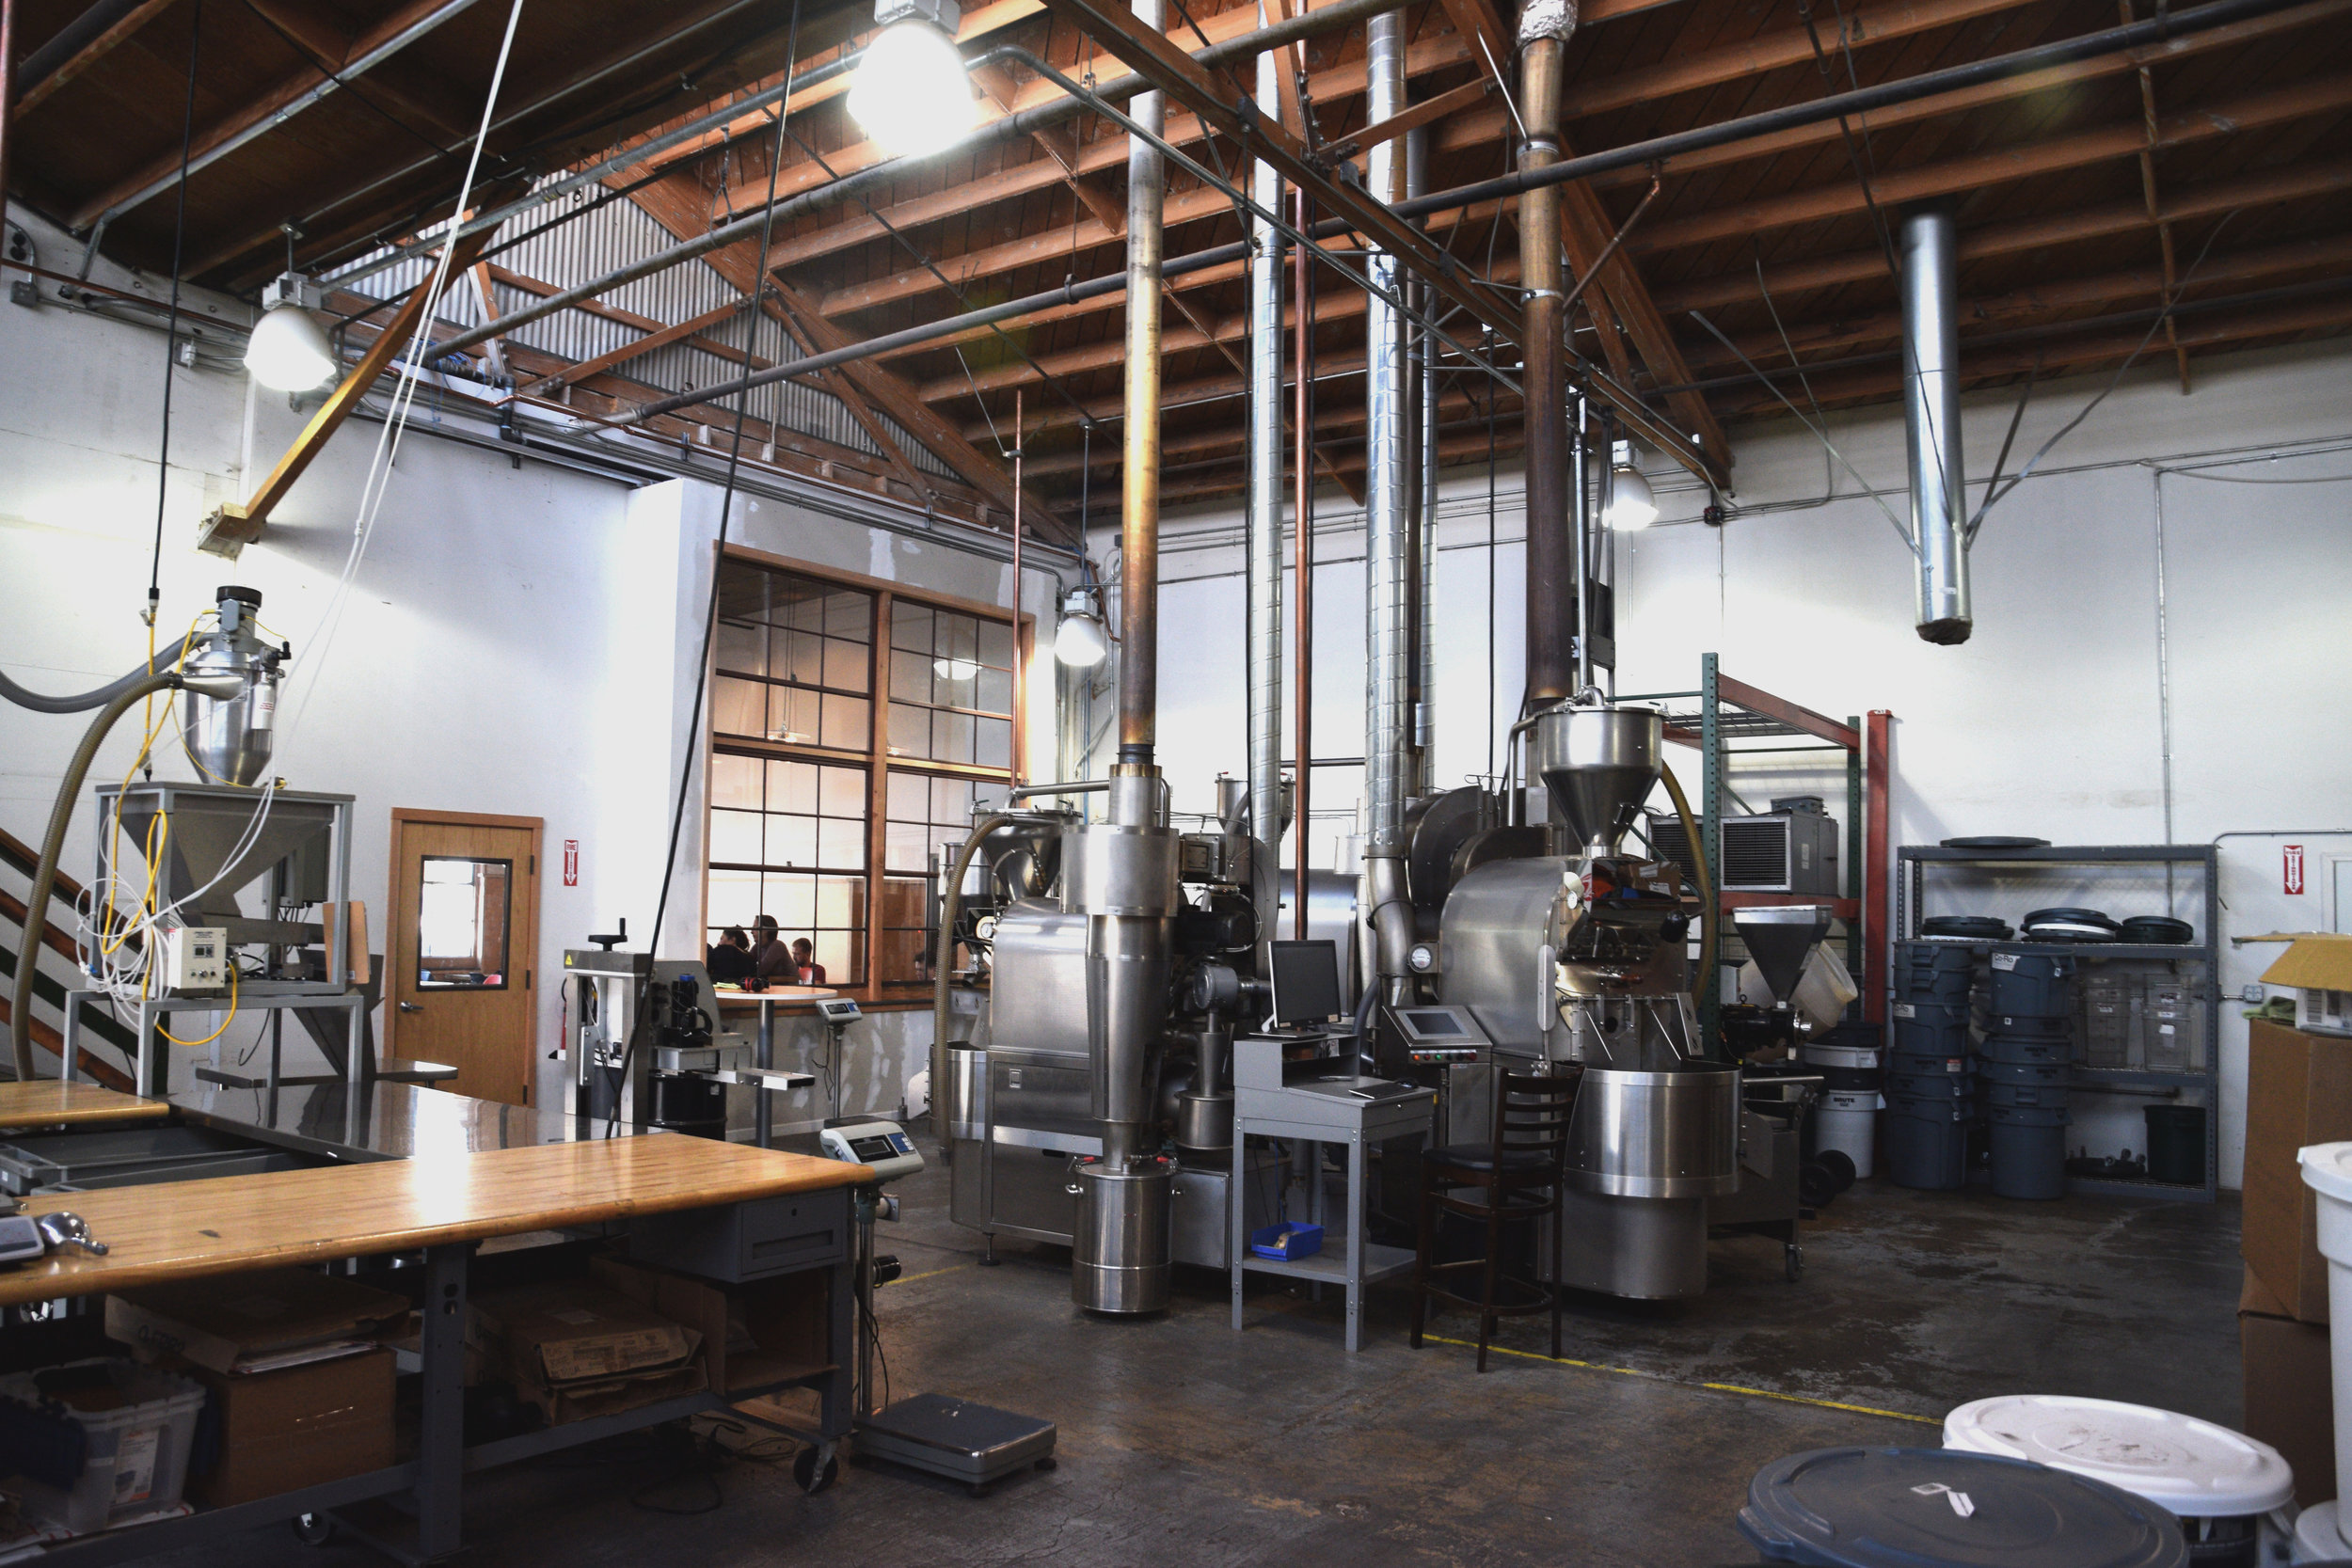 CoRo's collaborative coffee roastery with four state-of-the-art roasting machines & automatic packaging equipment. Window looks into our adjacent cafe, which serves coffees roasted onsite by our member brands.